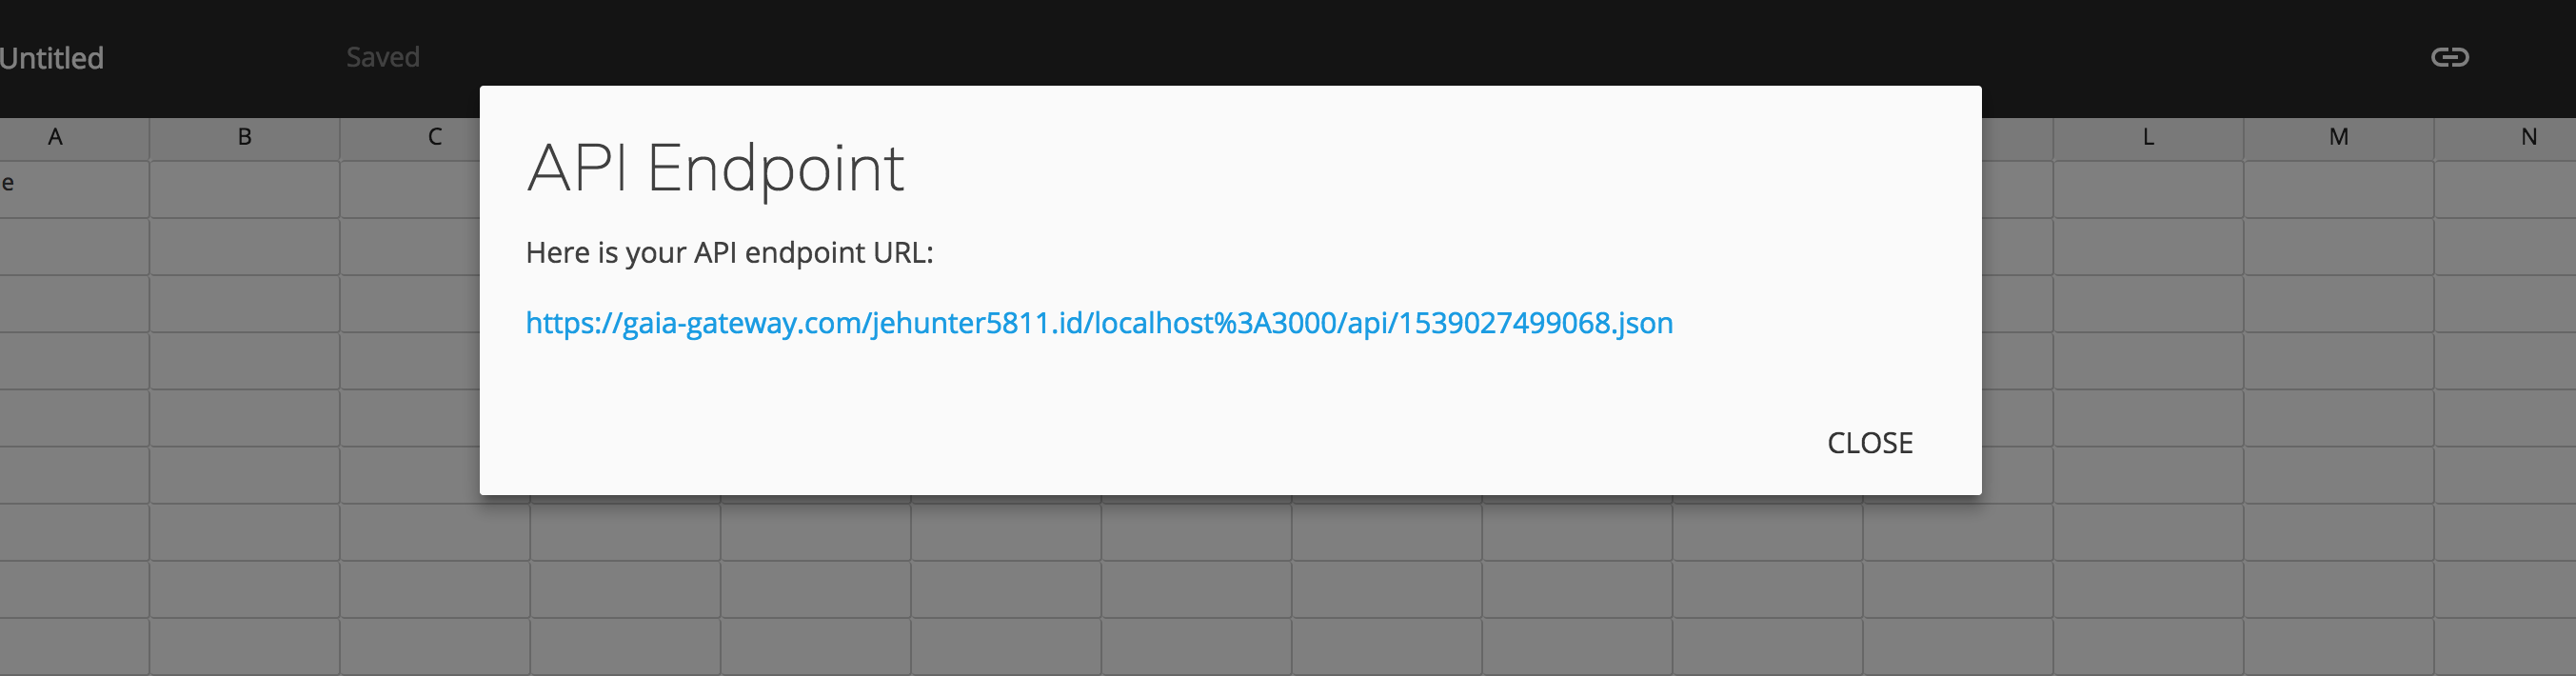 Hacking Graphite: Create Your Own Personal API - The Lead